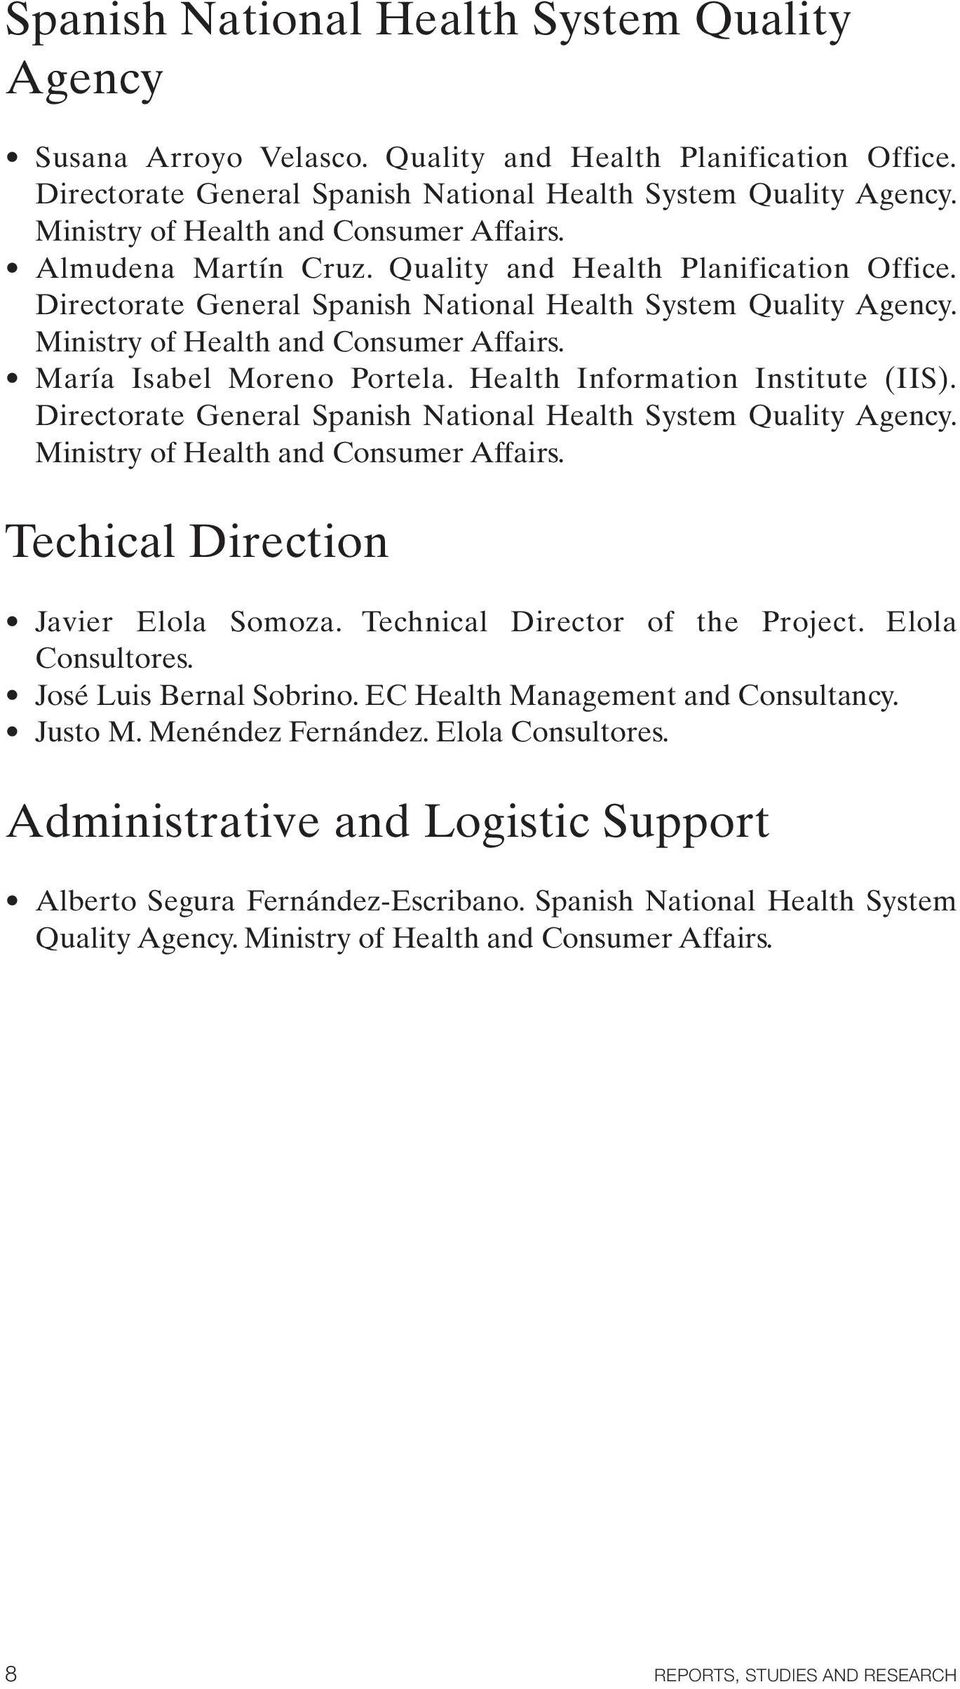 Ministry of Health and Consumer Affairs. María Isabel Moreno Portela. Health Information Institute (IIS). Directorate General Spanish National Health System Quality Agency.